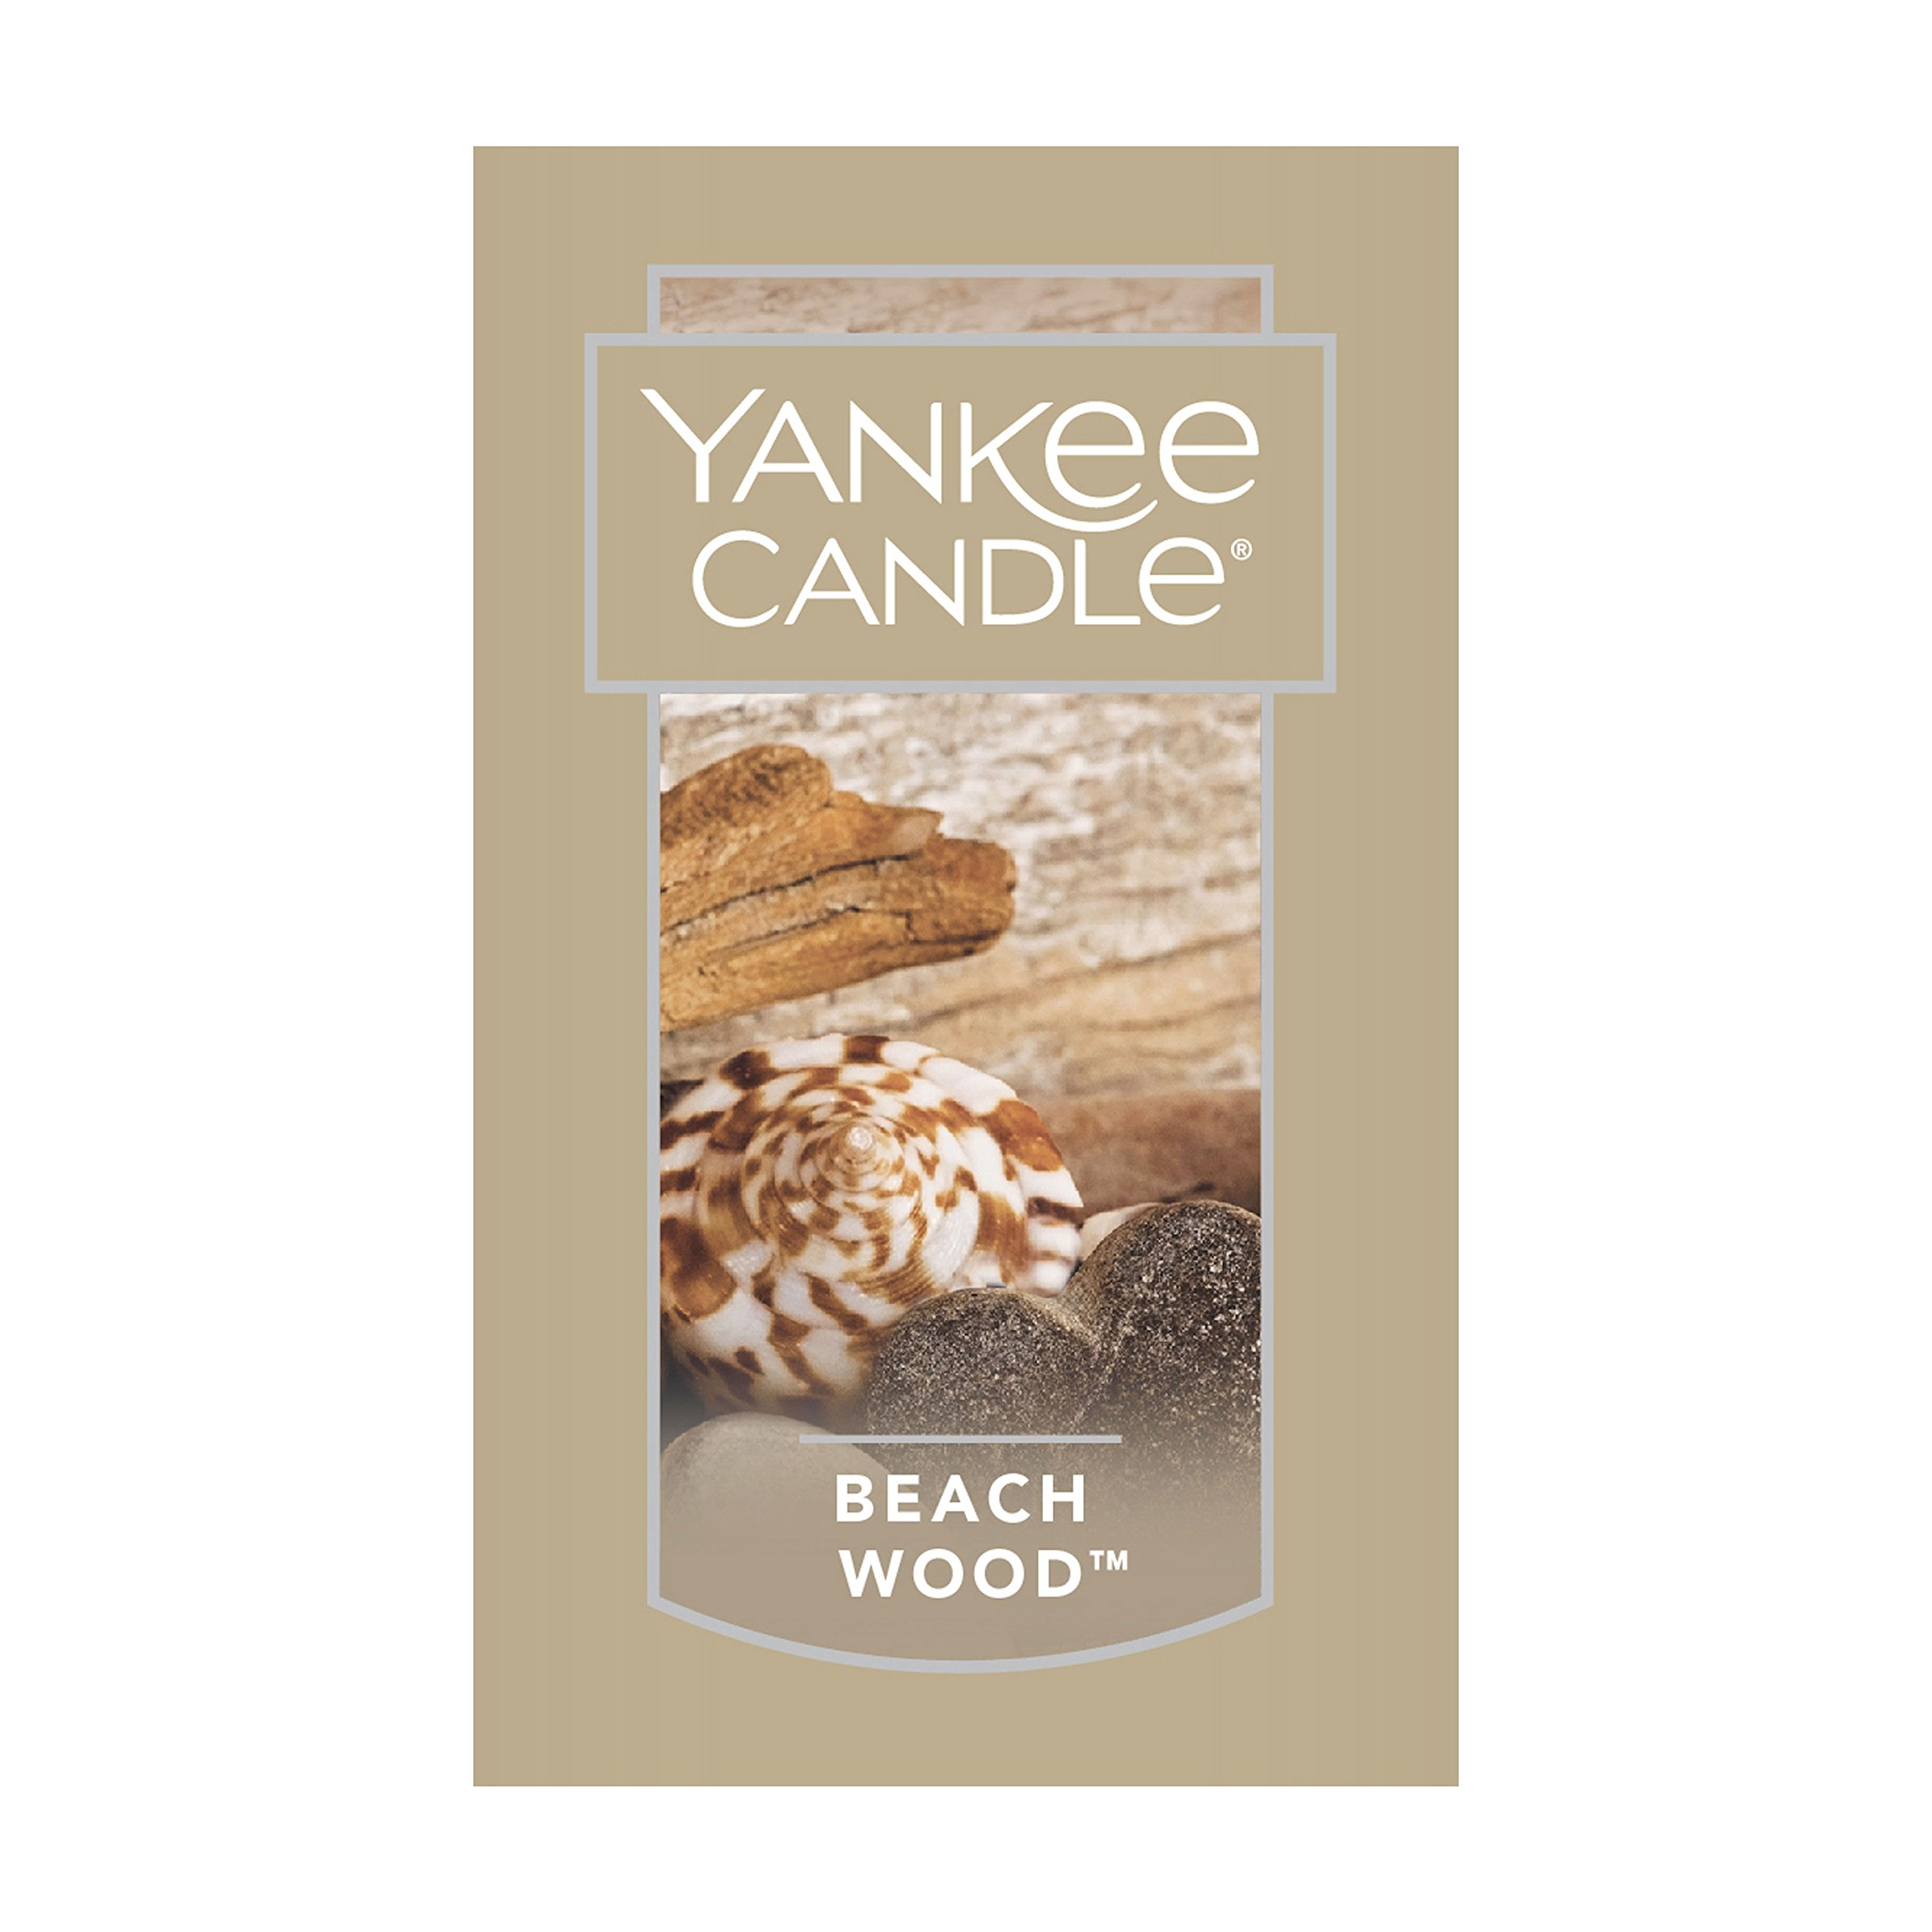 Yankee Candle Large Jar Candle, Beach Wood by Yankee Candle (Image #3)